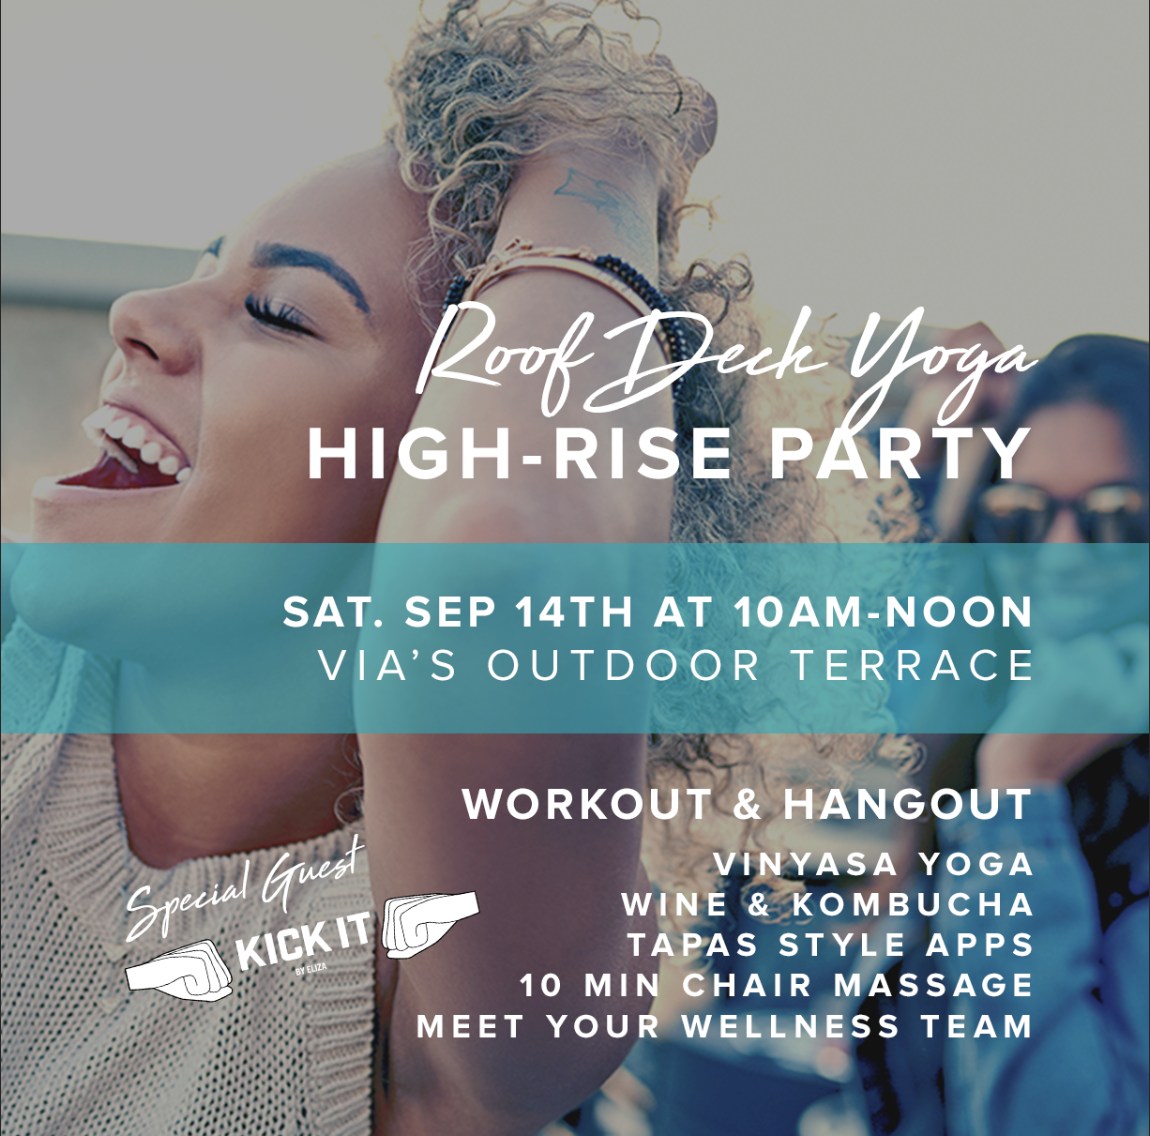 Roof Deck Yoga - High-Rise Party at VIA